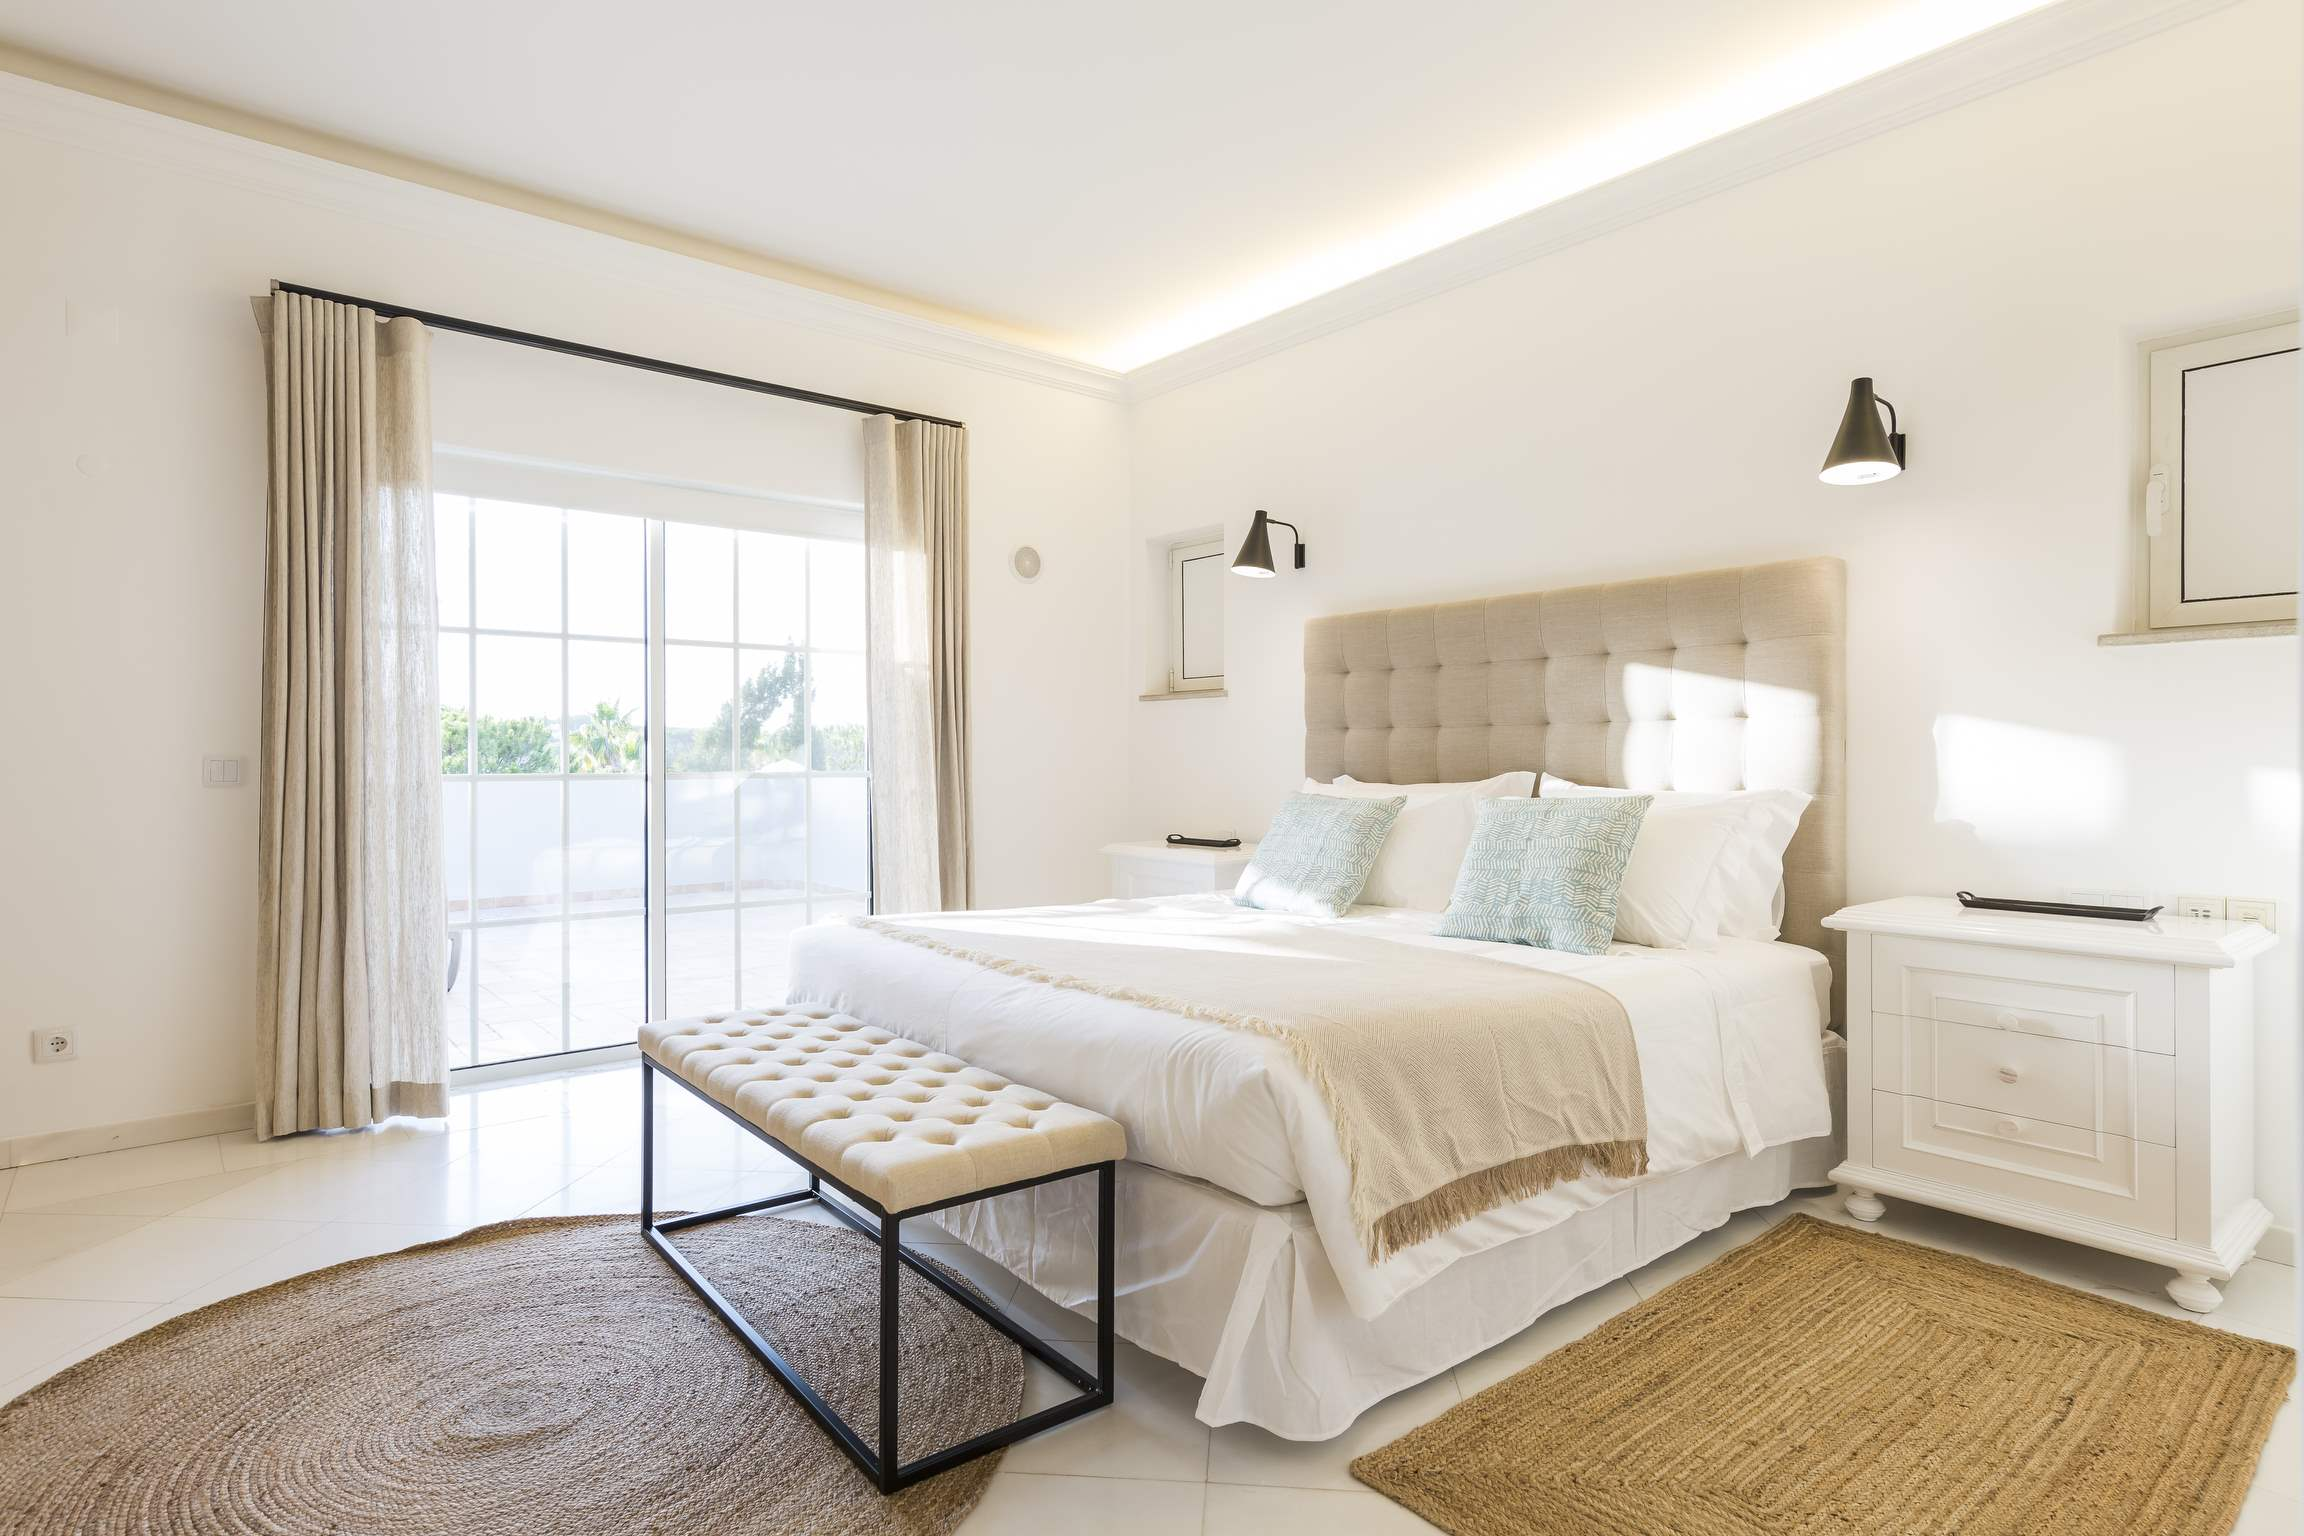 Casa Potes, 5 bedroom villa in Vale do Lobo, Algarve Photo #15